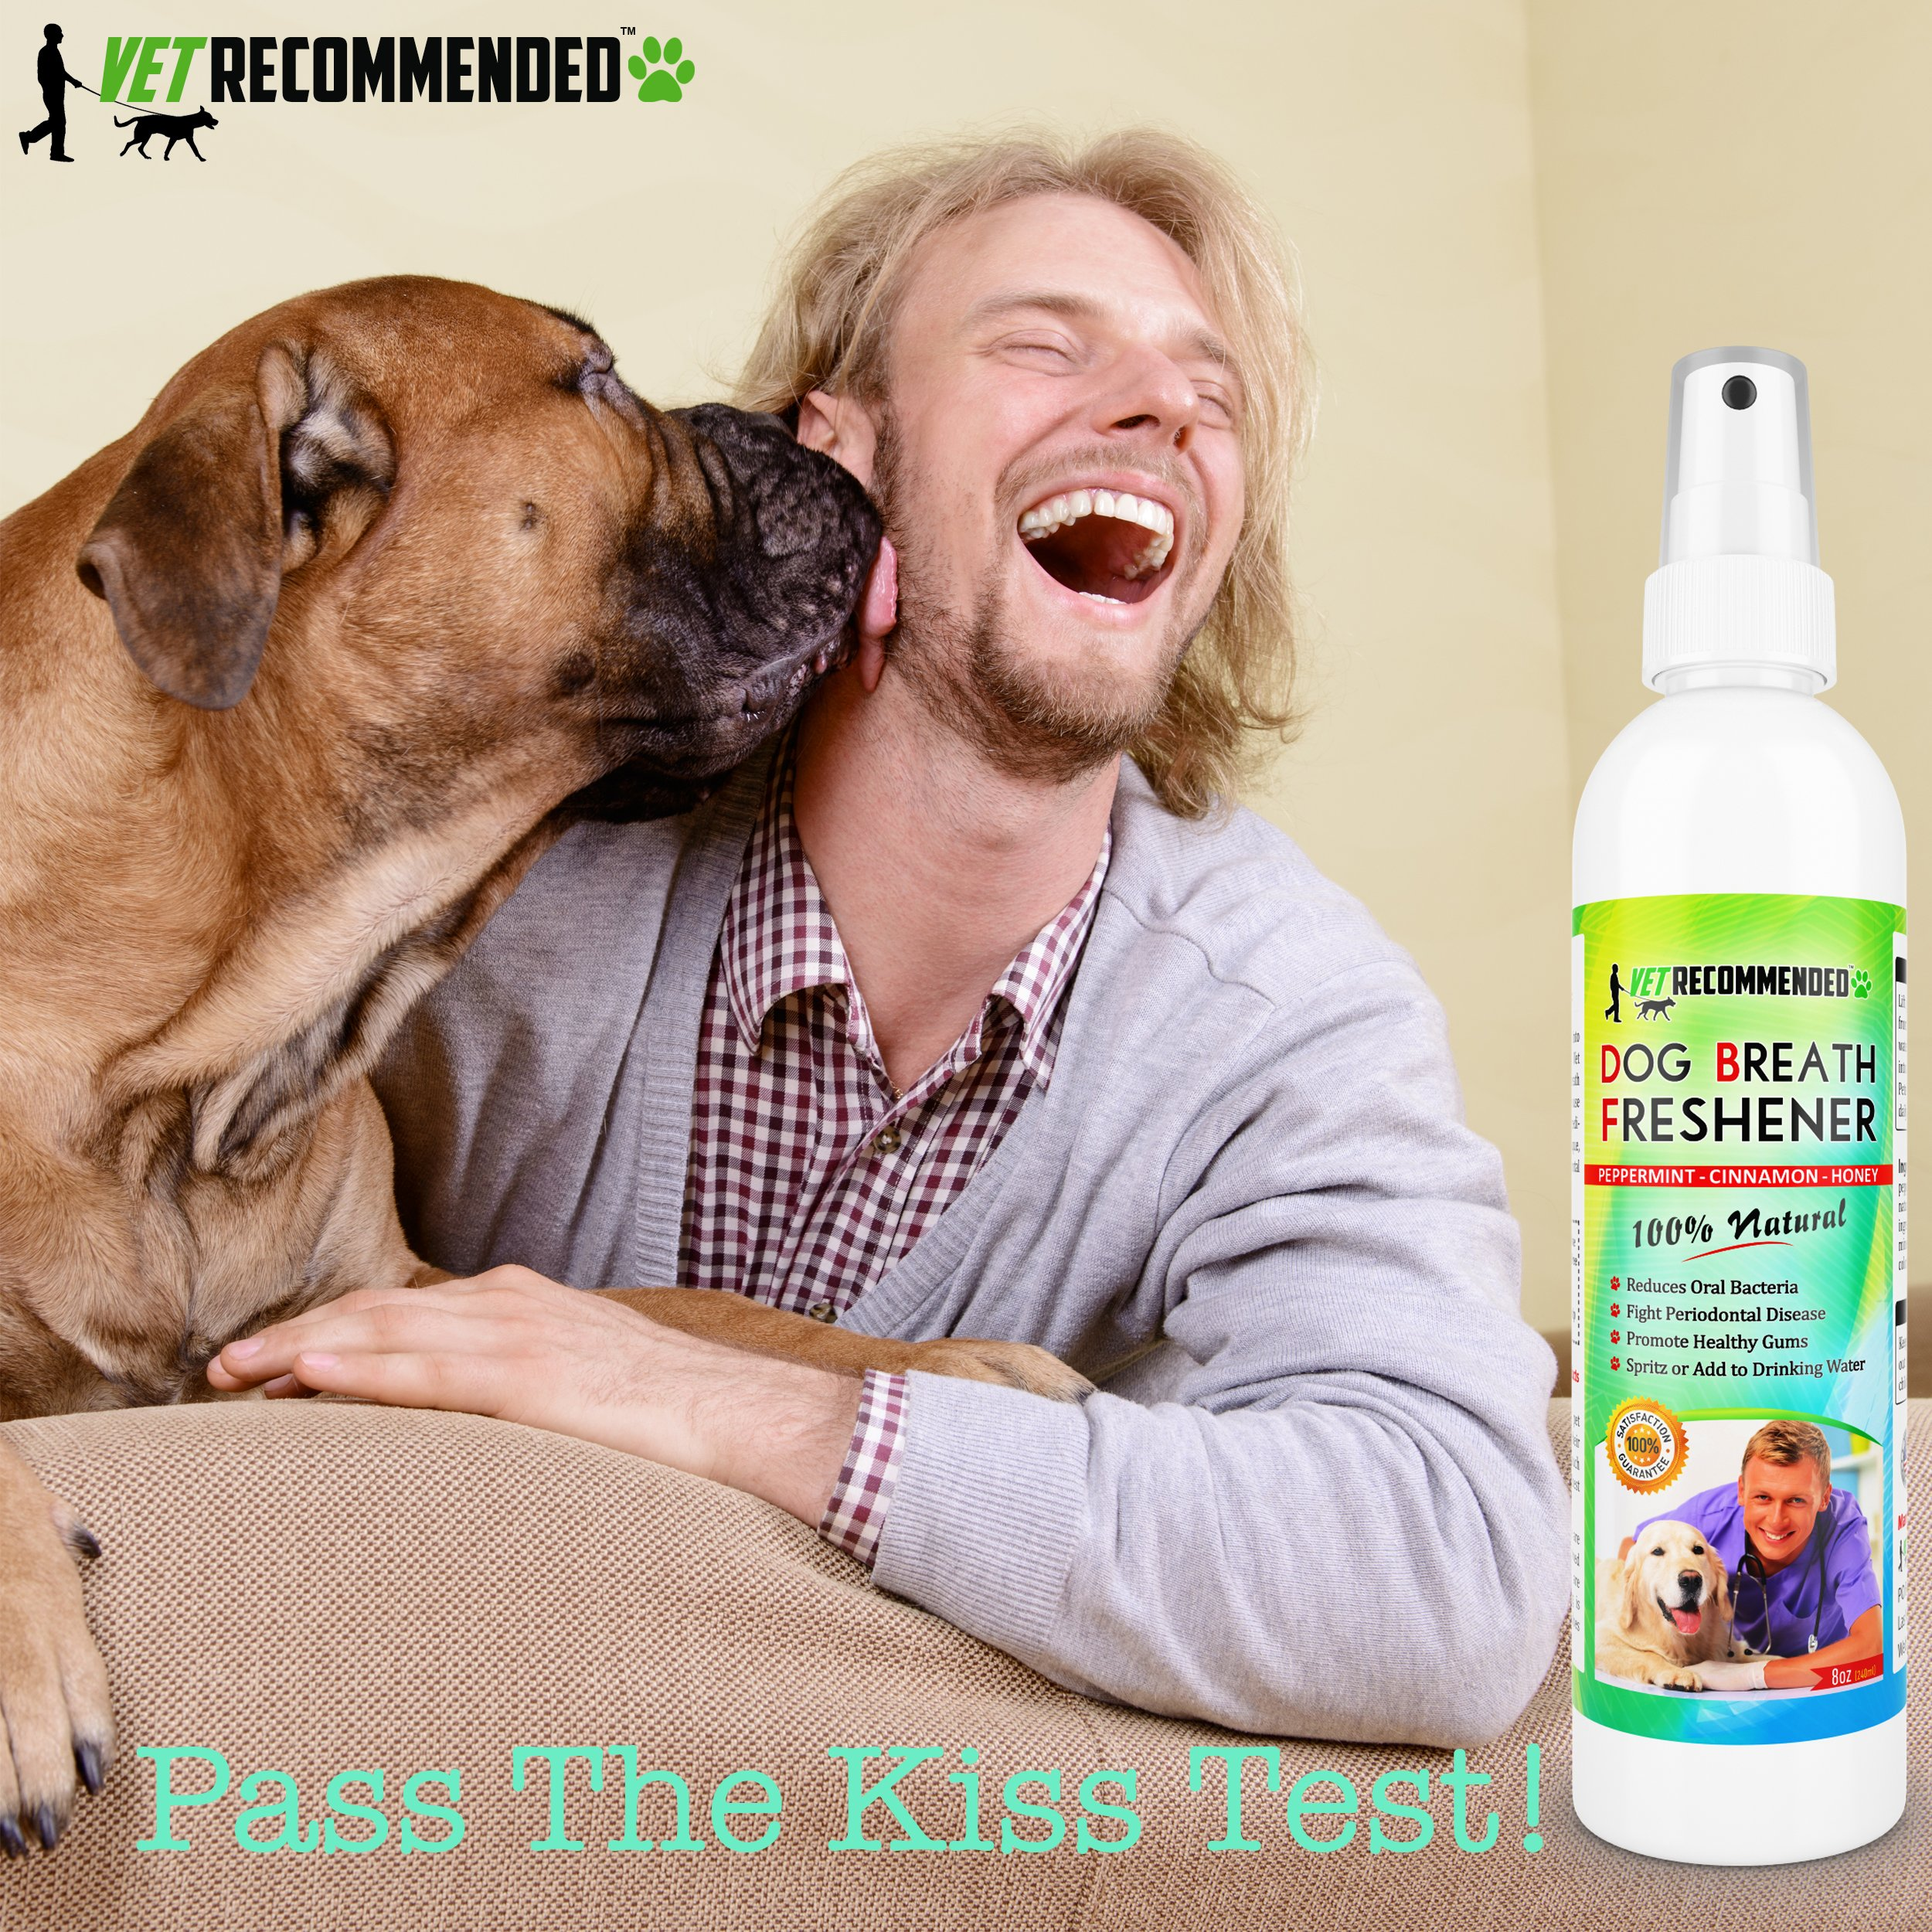 Vet Recommended Dog Breath Freshener & Pet Dental Water Additive (8oz/240ml) All Natural - Perfect for Bad Dog Breath & Dog Teeth Spray. Spray in Mouth or Add to Pet's Drinking Water. USA Made. by Vet Recommended (Image #2)